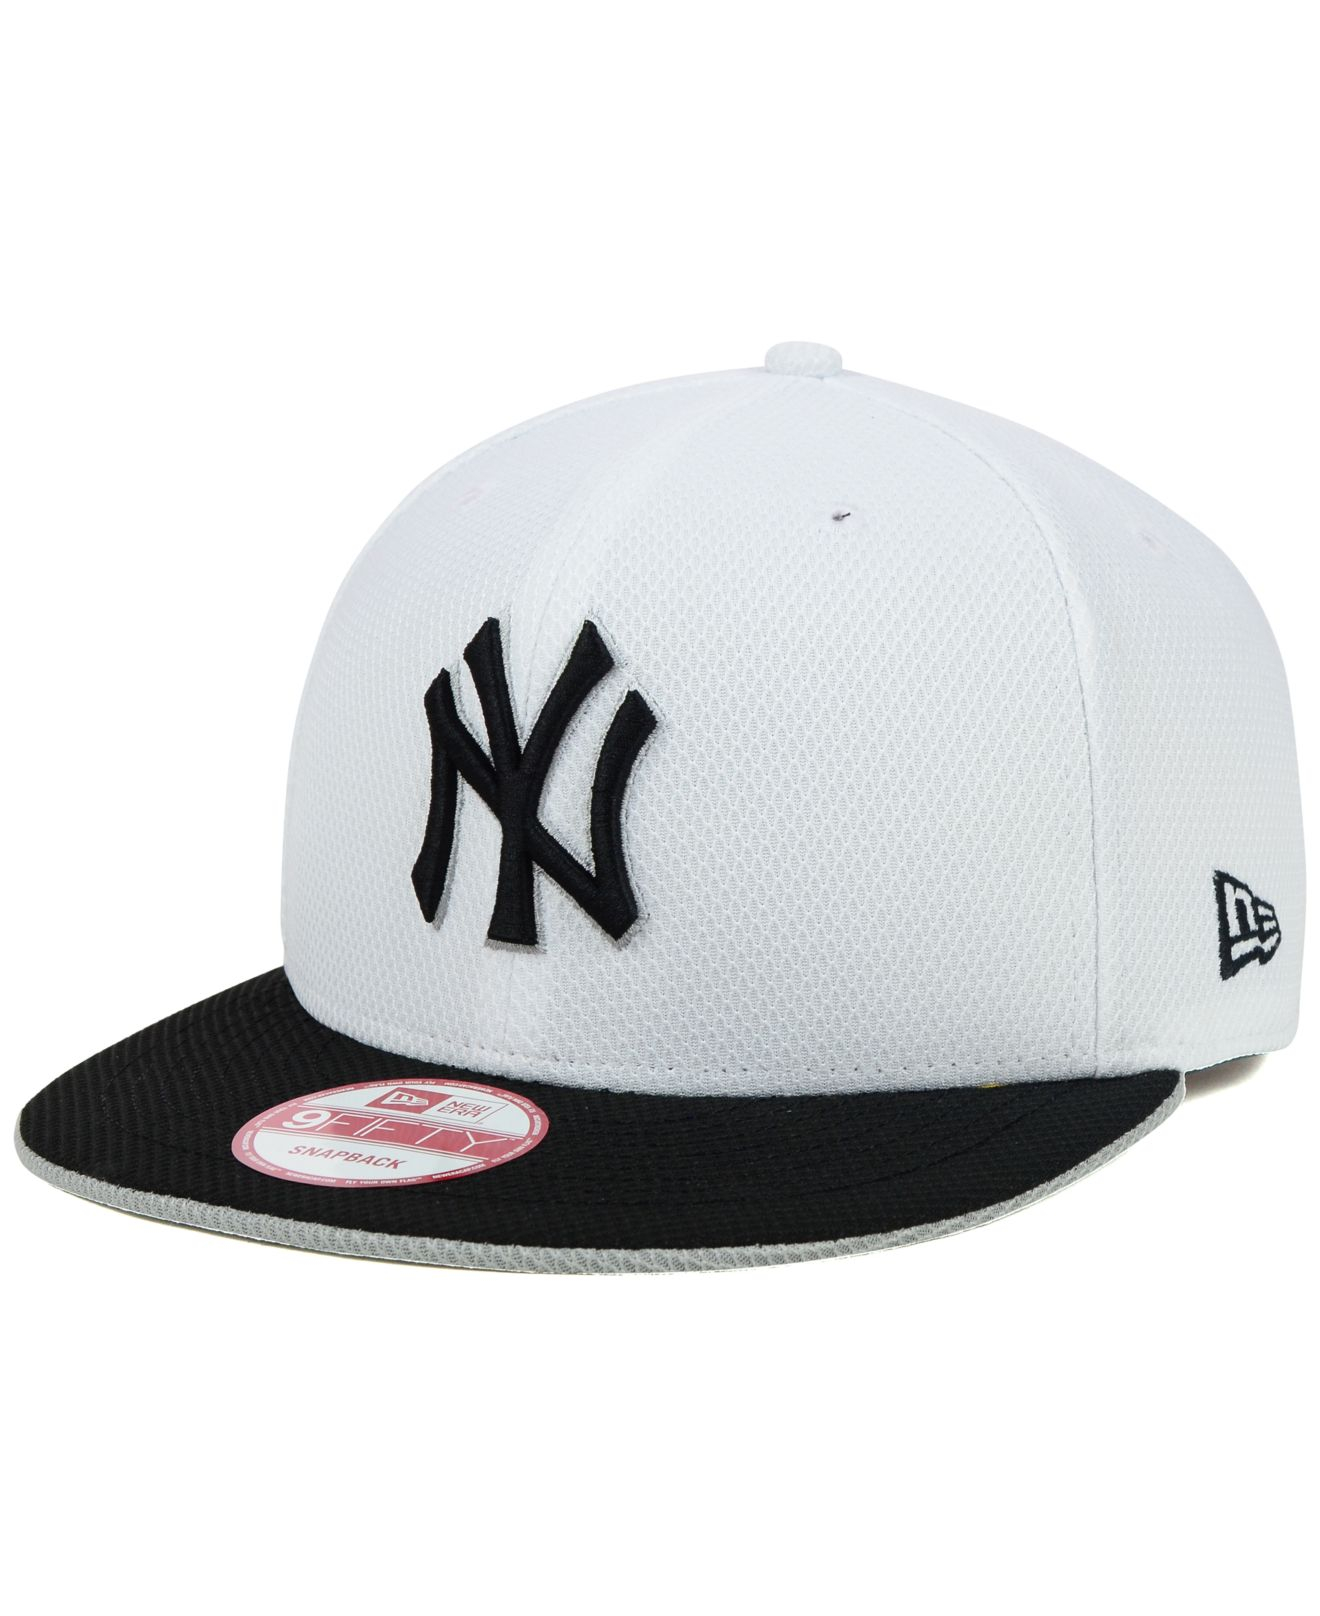 2dbada4ab4c9f ... best lyst ktz new york yankees white diamond era 9fifty snapback cap in  33e4b a3469